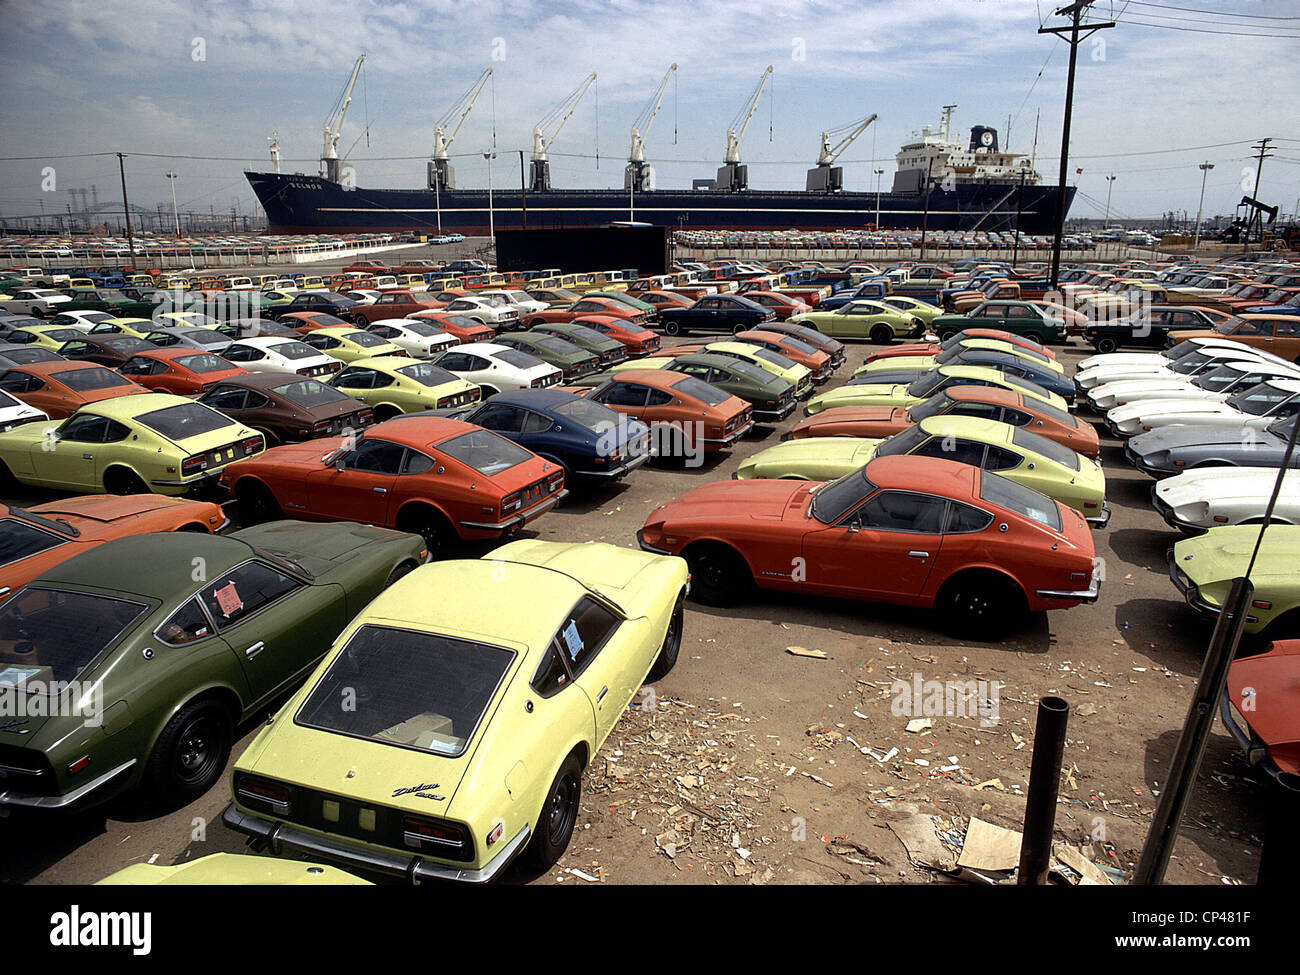 Imported Japanese Cars On The Pier In An American Port These